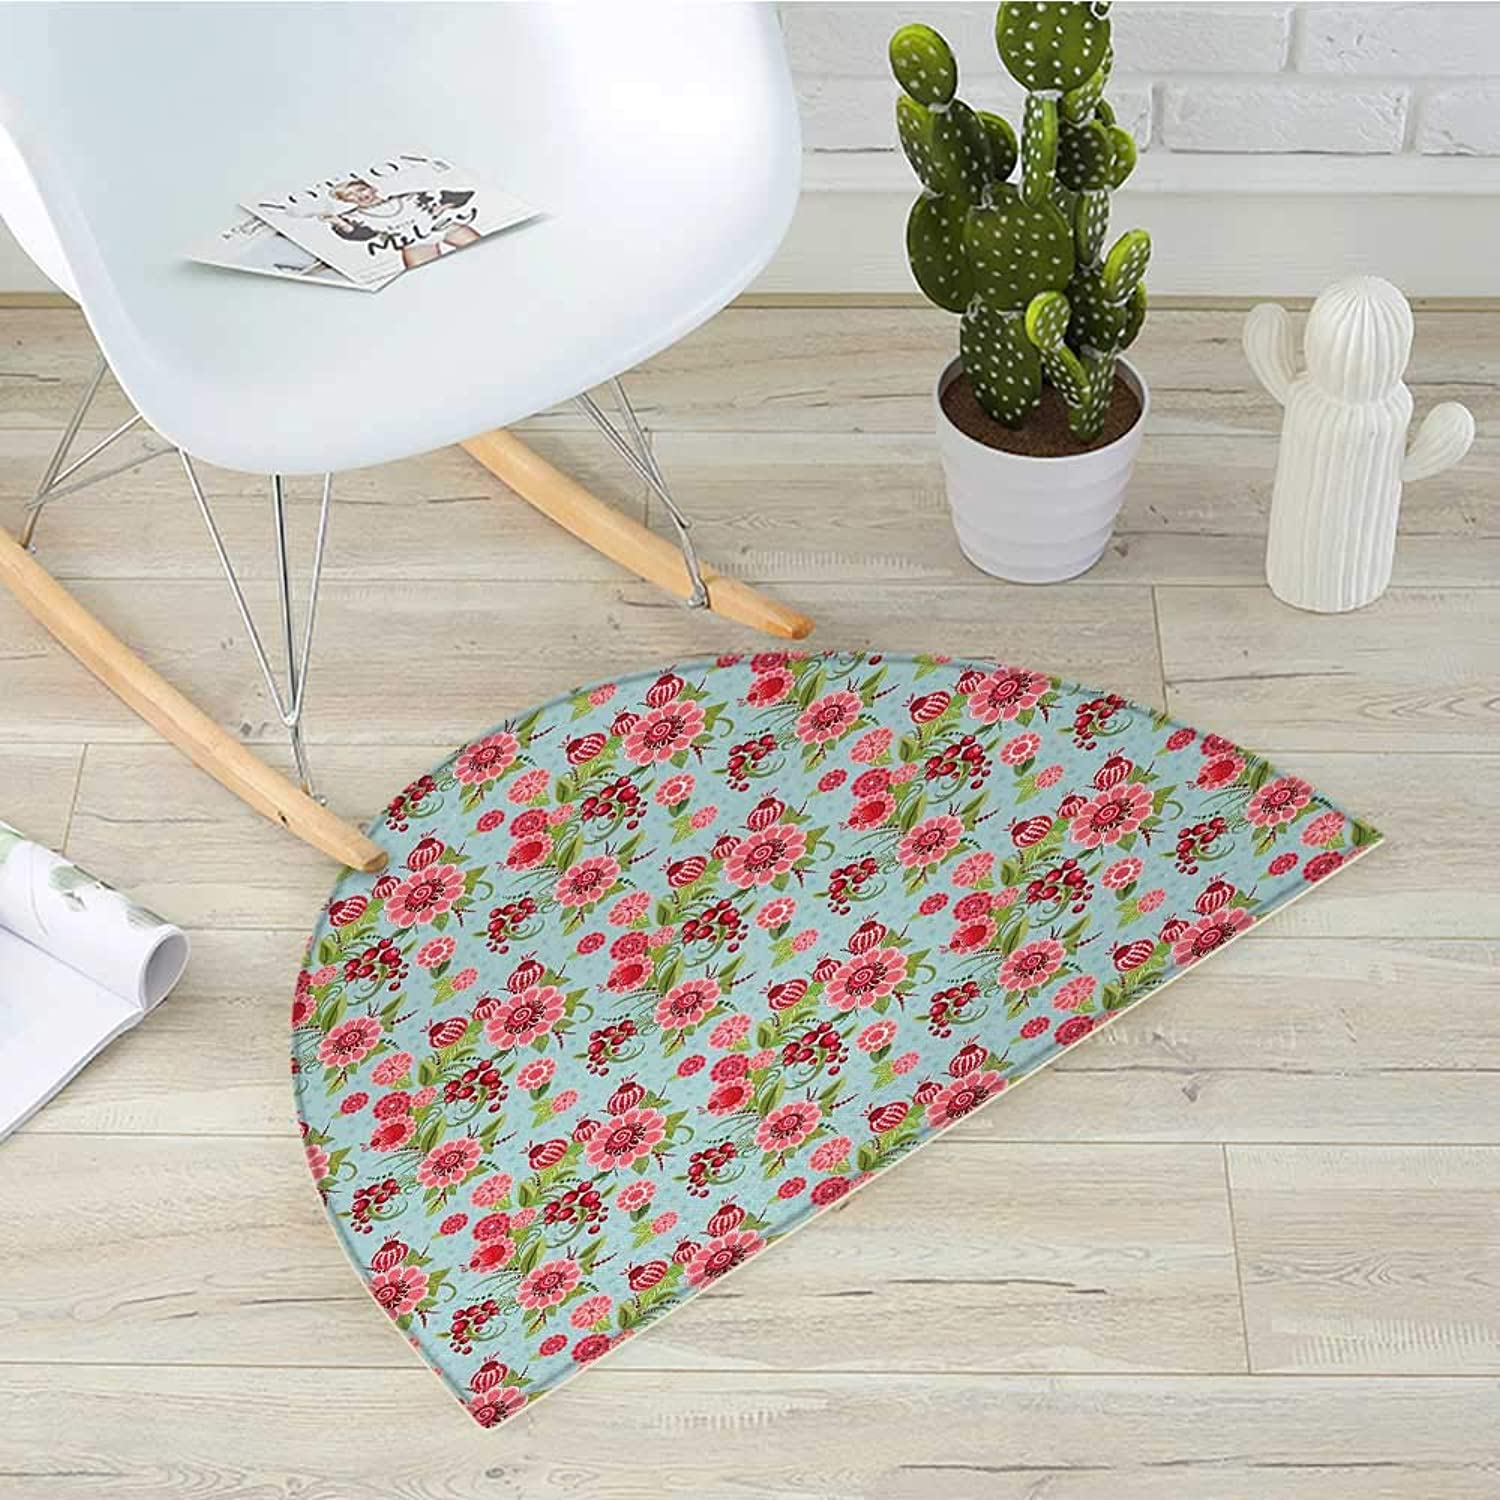 Flower Semicircle Doormat Tribal Eastern Oriental Botanic Flower Buds and Floral with Leaves Natural Print Halfmoon doormats H 39.3  xD 59  Pink and bluee